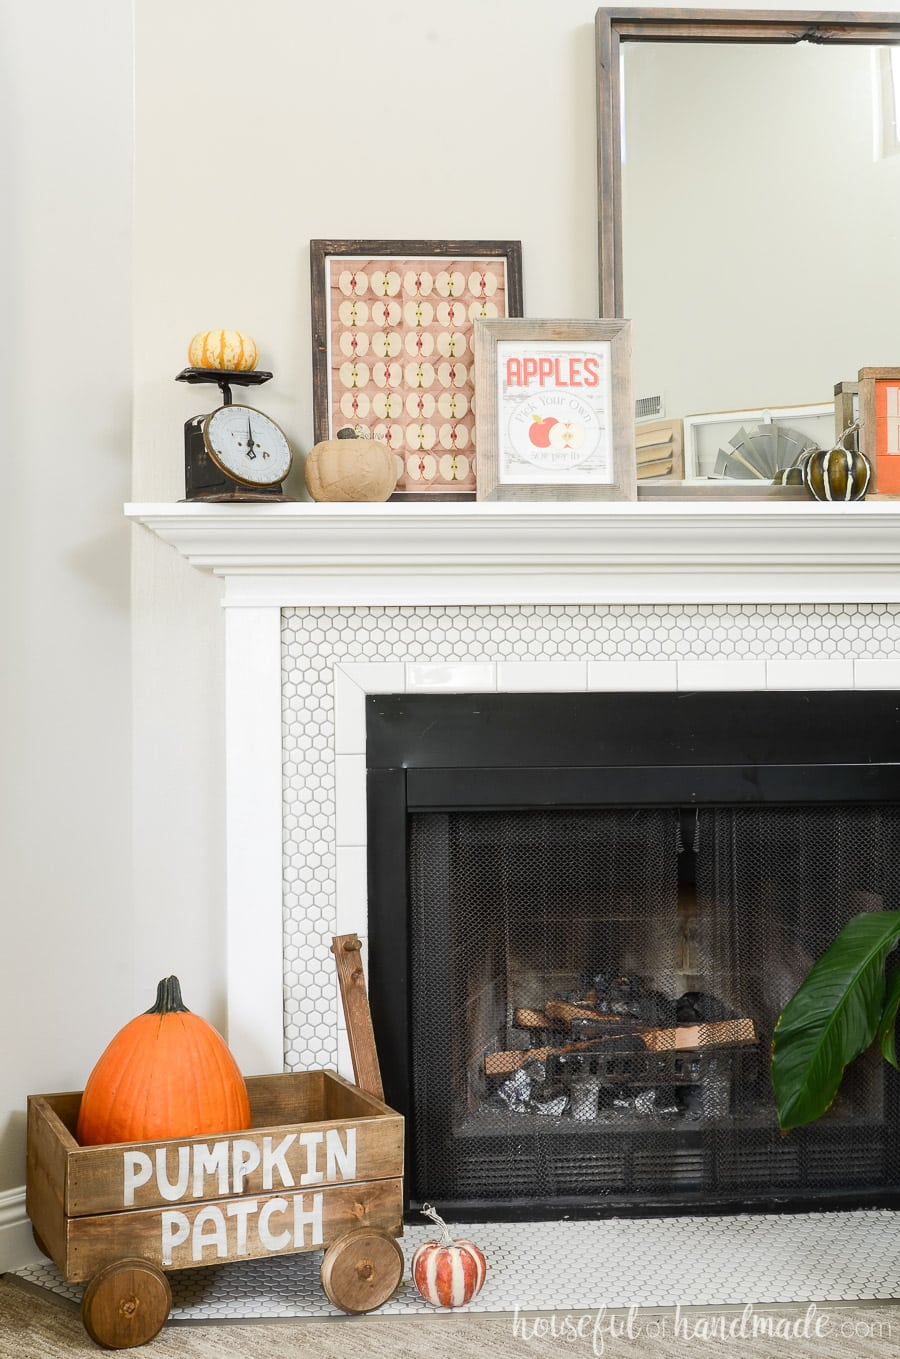 View of the entire fall mantel with the decorative wood wagon holding the pumpkin on the hearth.